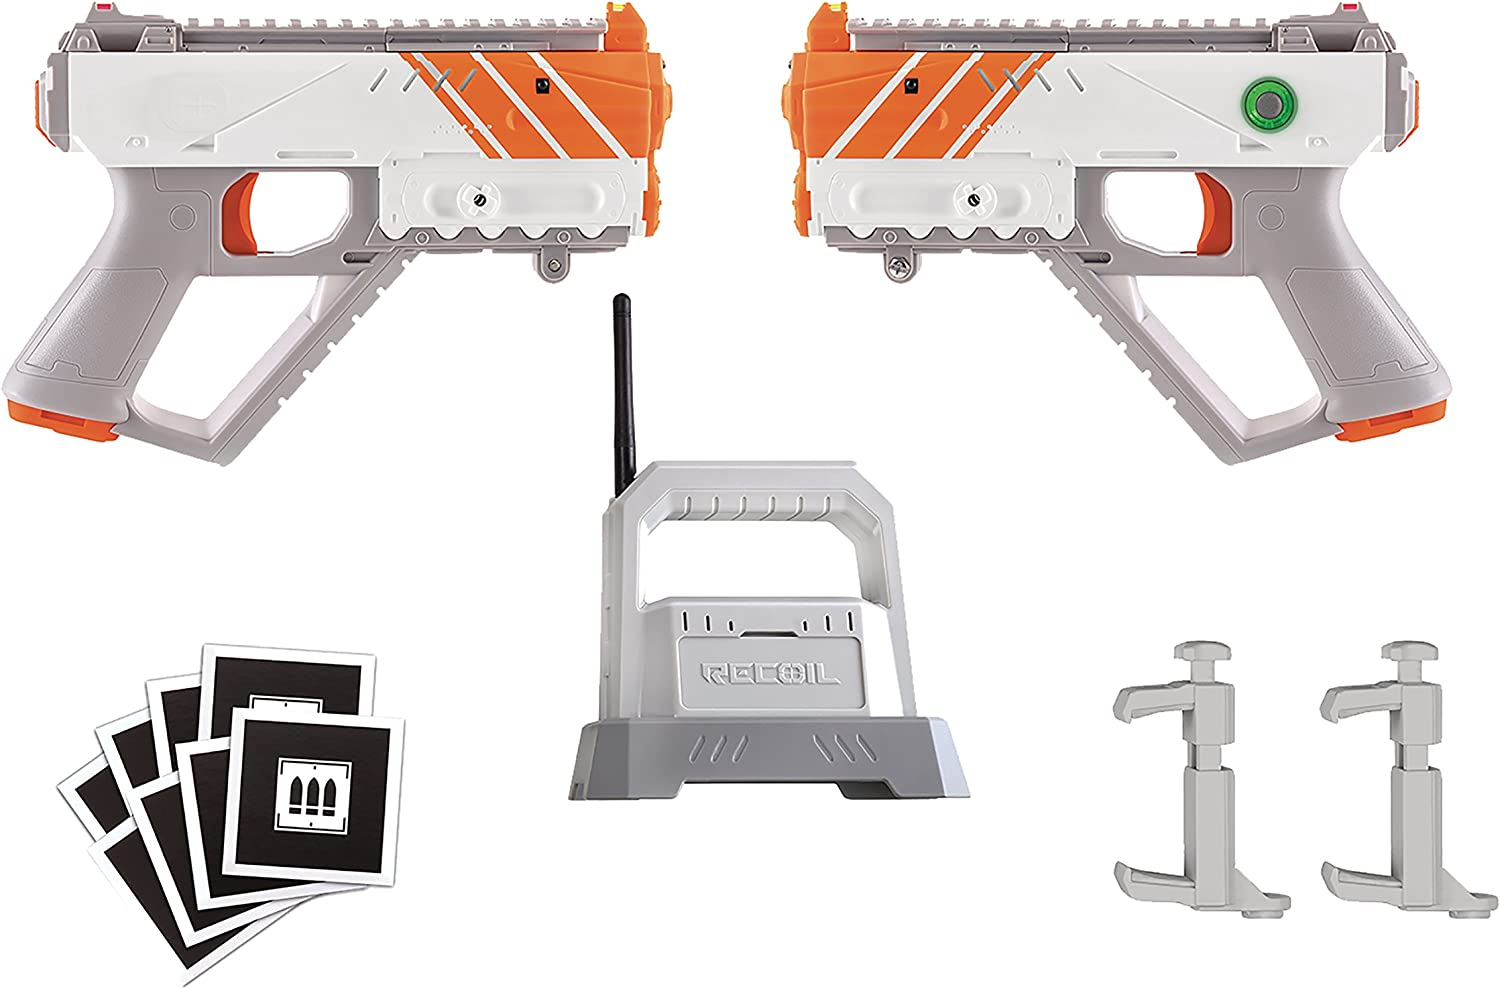 Top 9 Best Laser Tag Guns for Kids (2020 Reviews & Buying Guide) 5